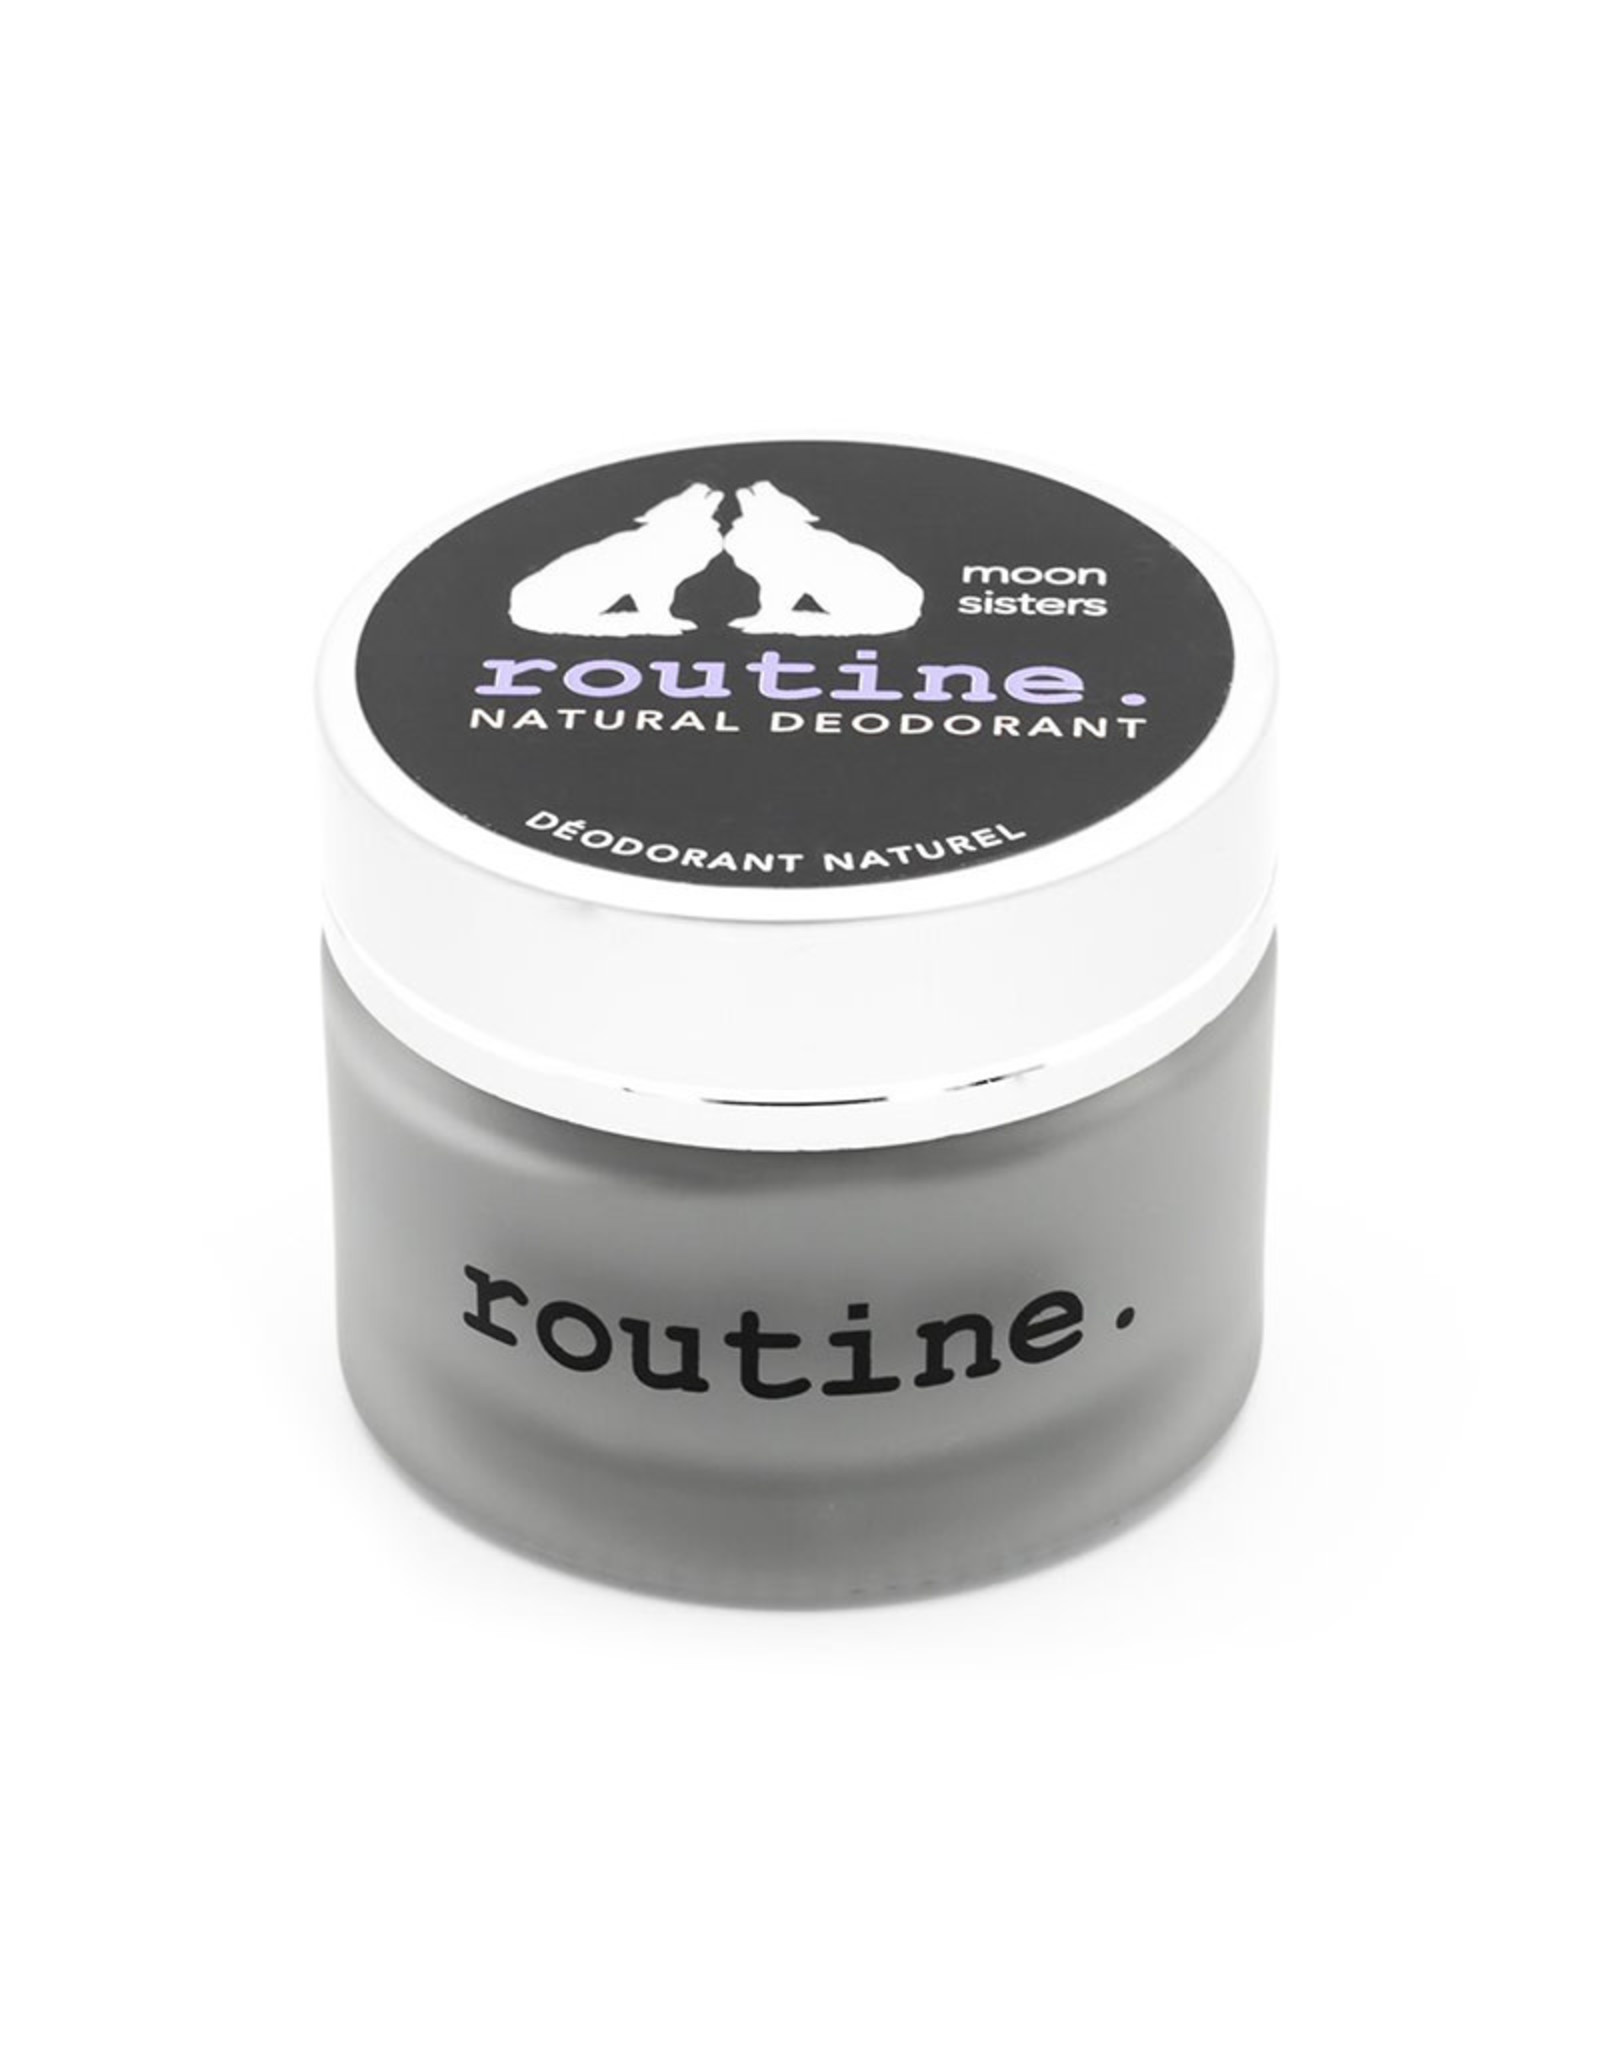 Routine Deodorant Routine - Moon Sisters